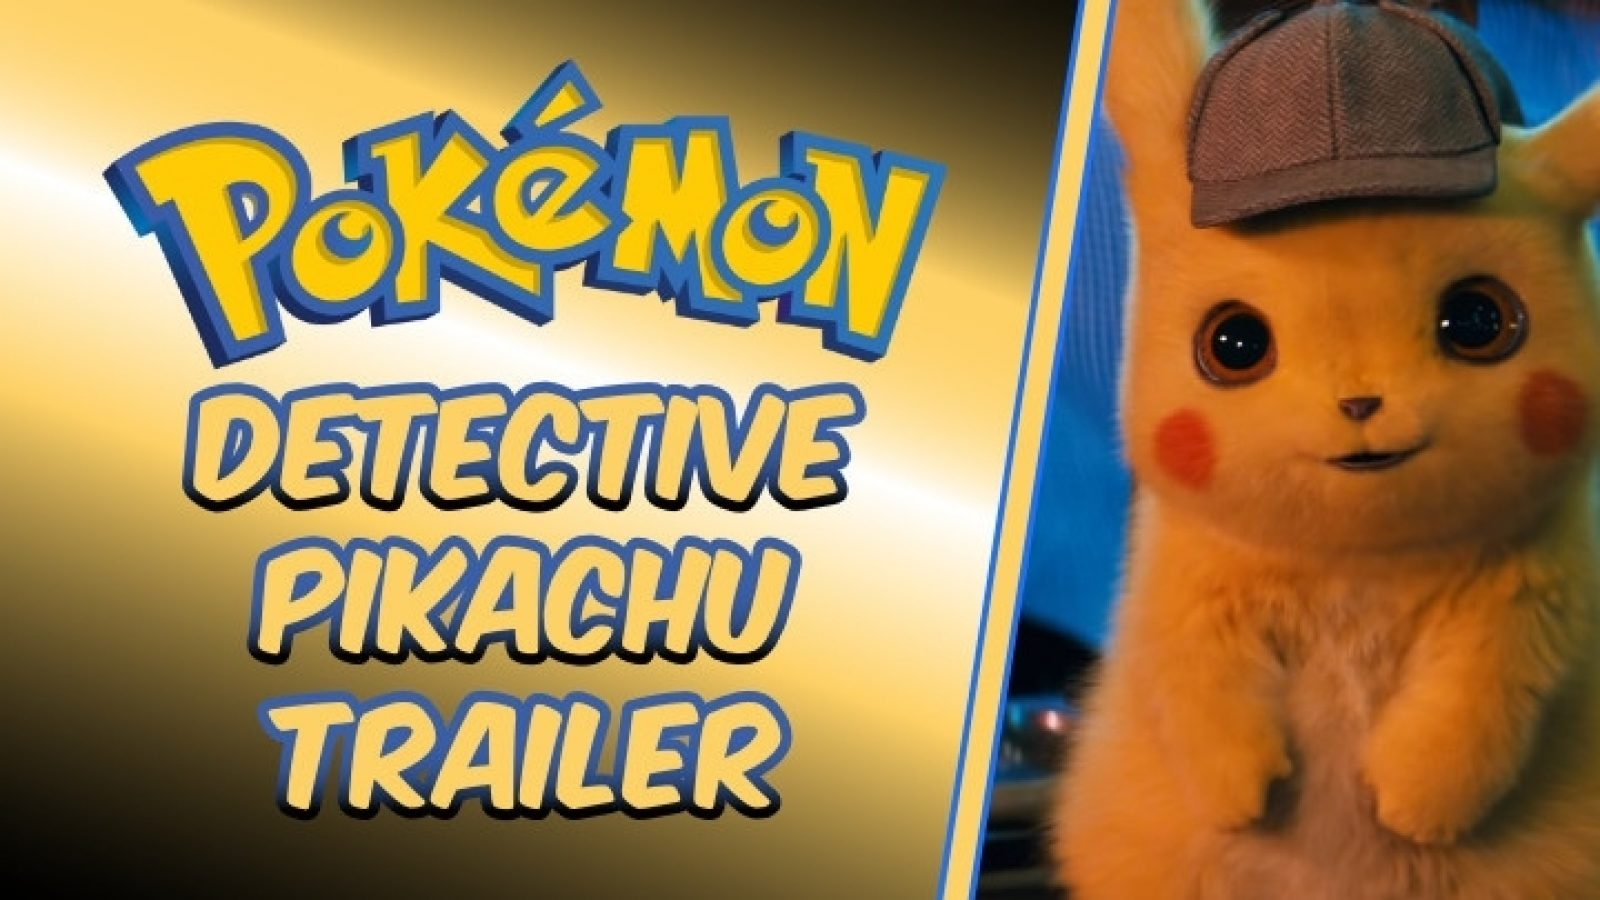 Pokemon Detective Pikachu Wallpapers High Quality Download